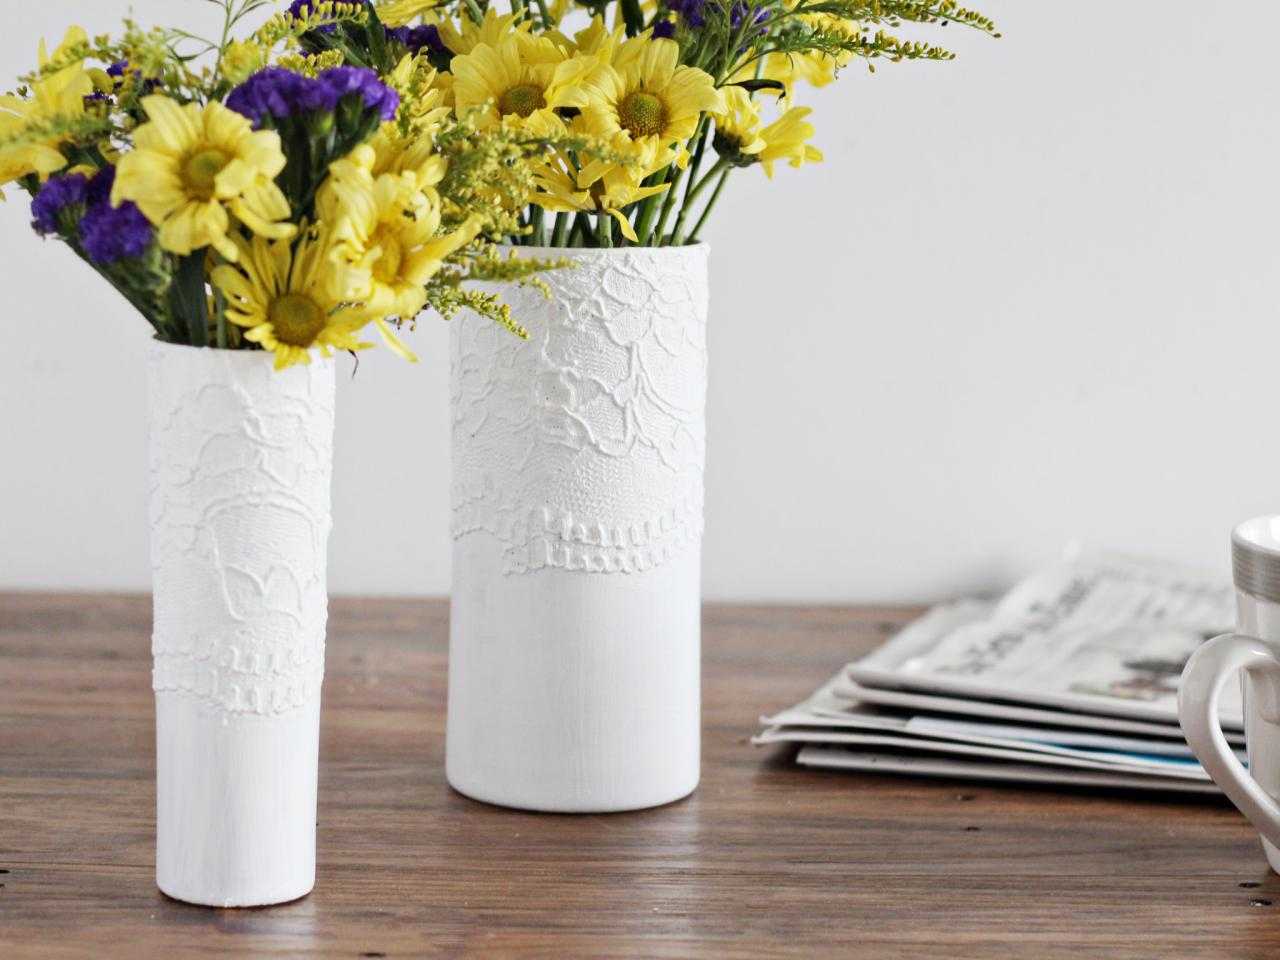 How to make a modern textured vase hgtv how to make a modern textured vase reviewsmspy